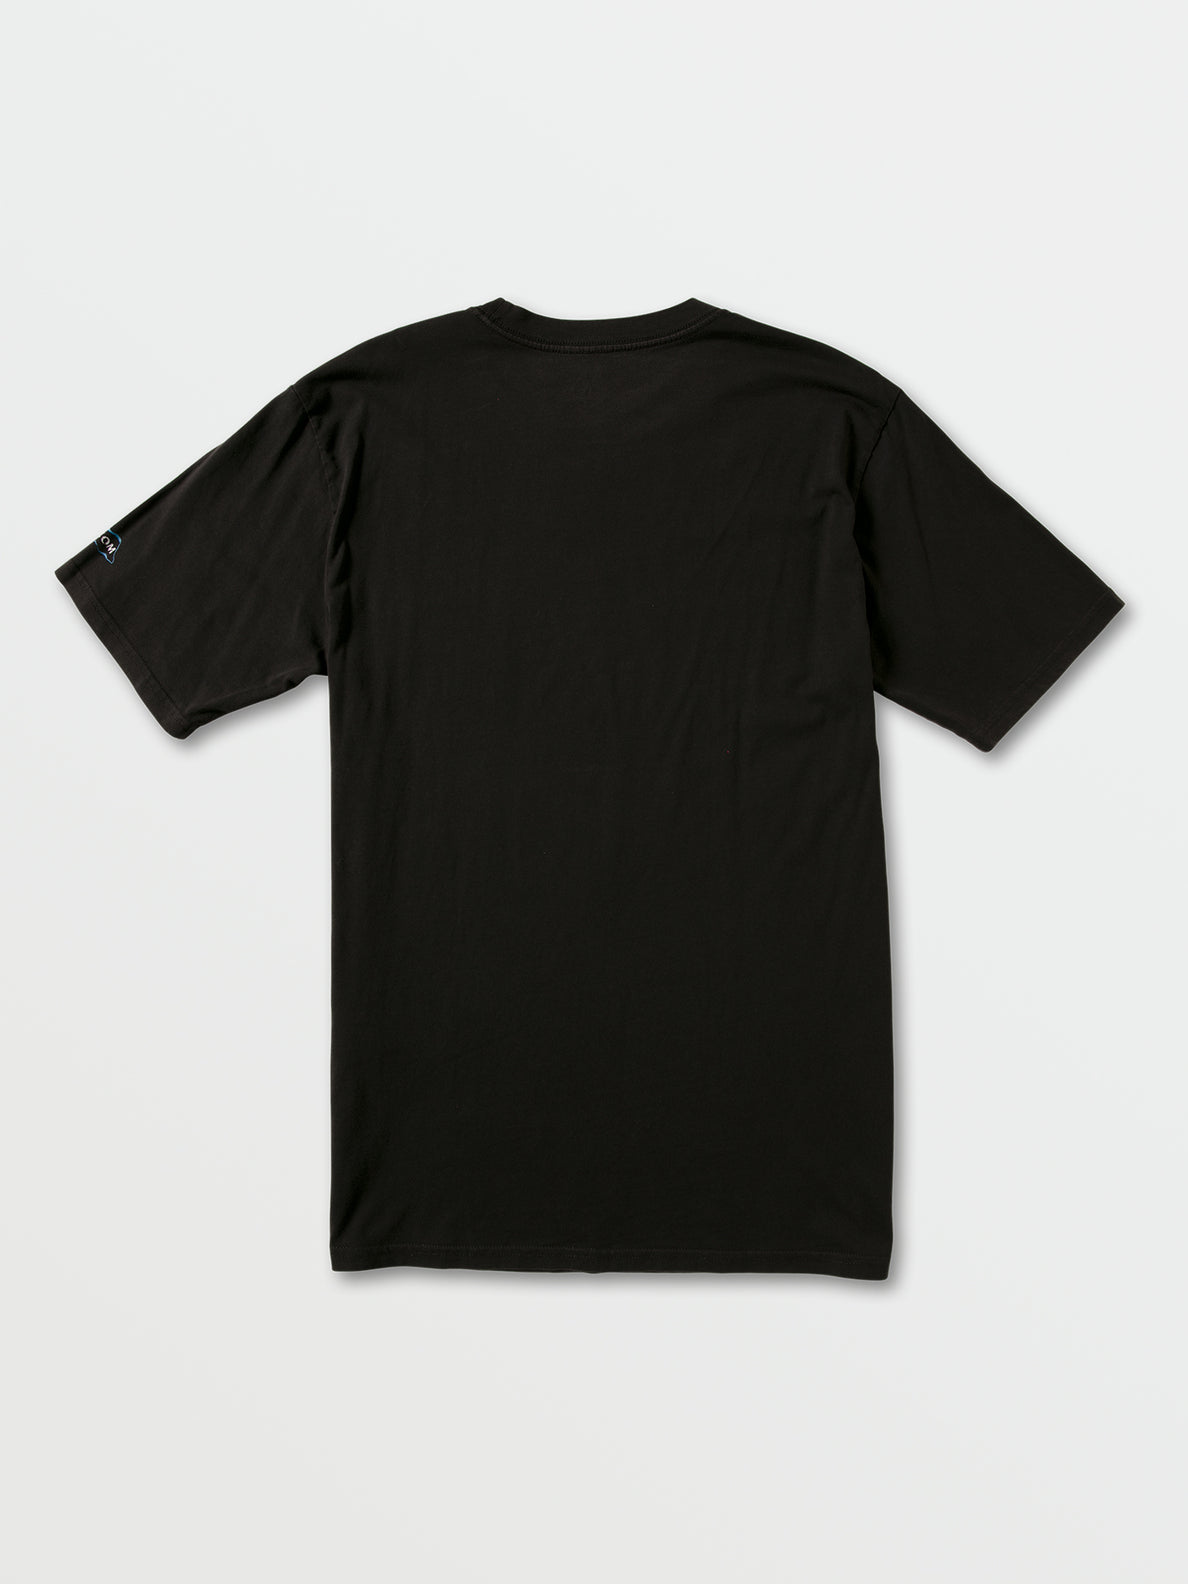 Posted Short Sleeve Tee - Black (A4322001_BLK) [B]